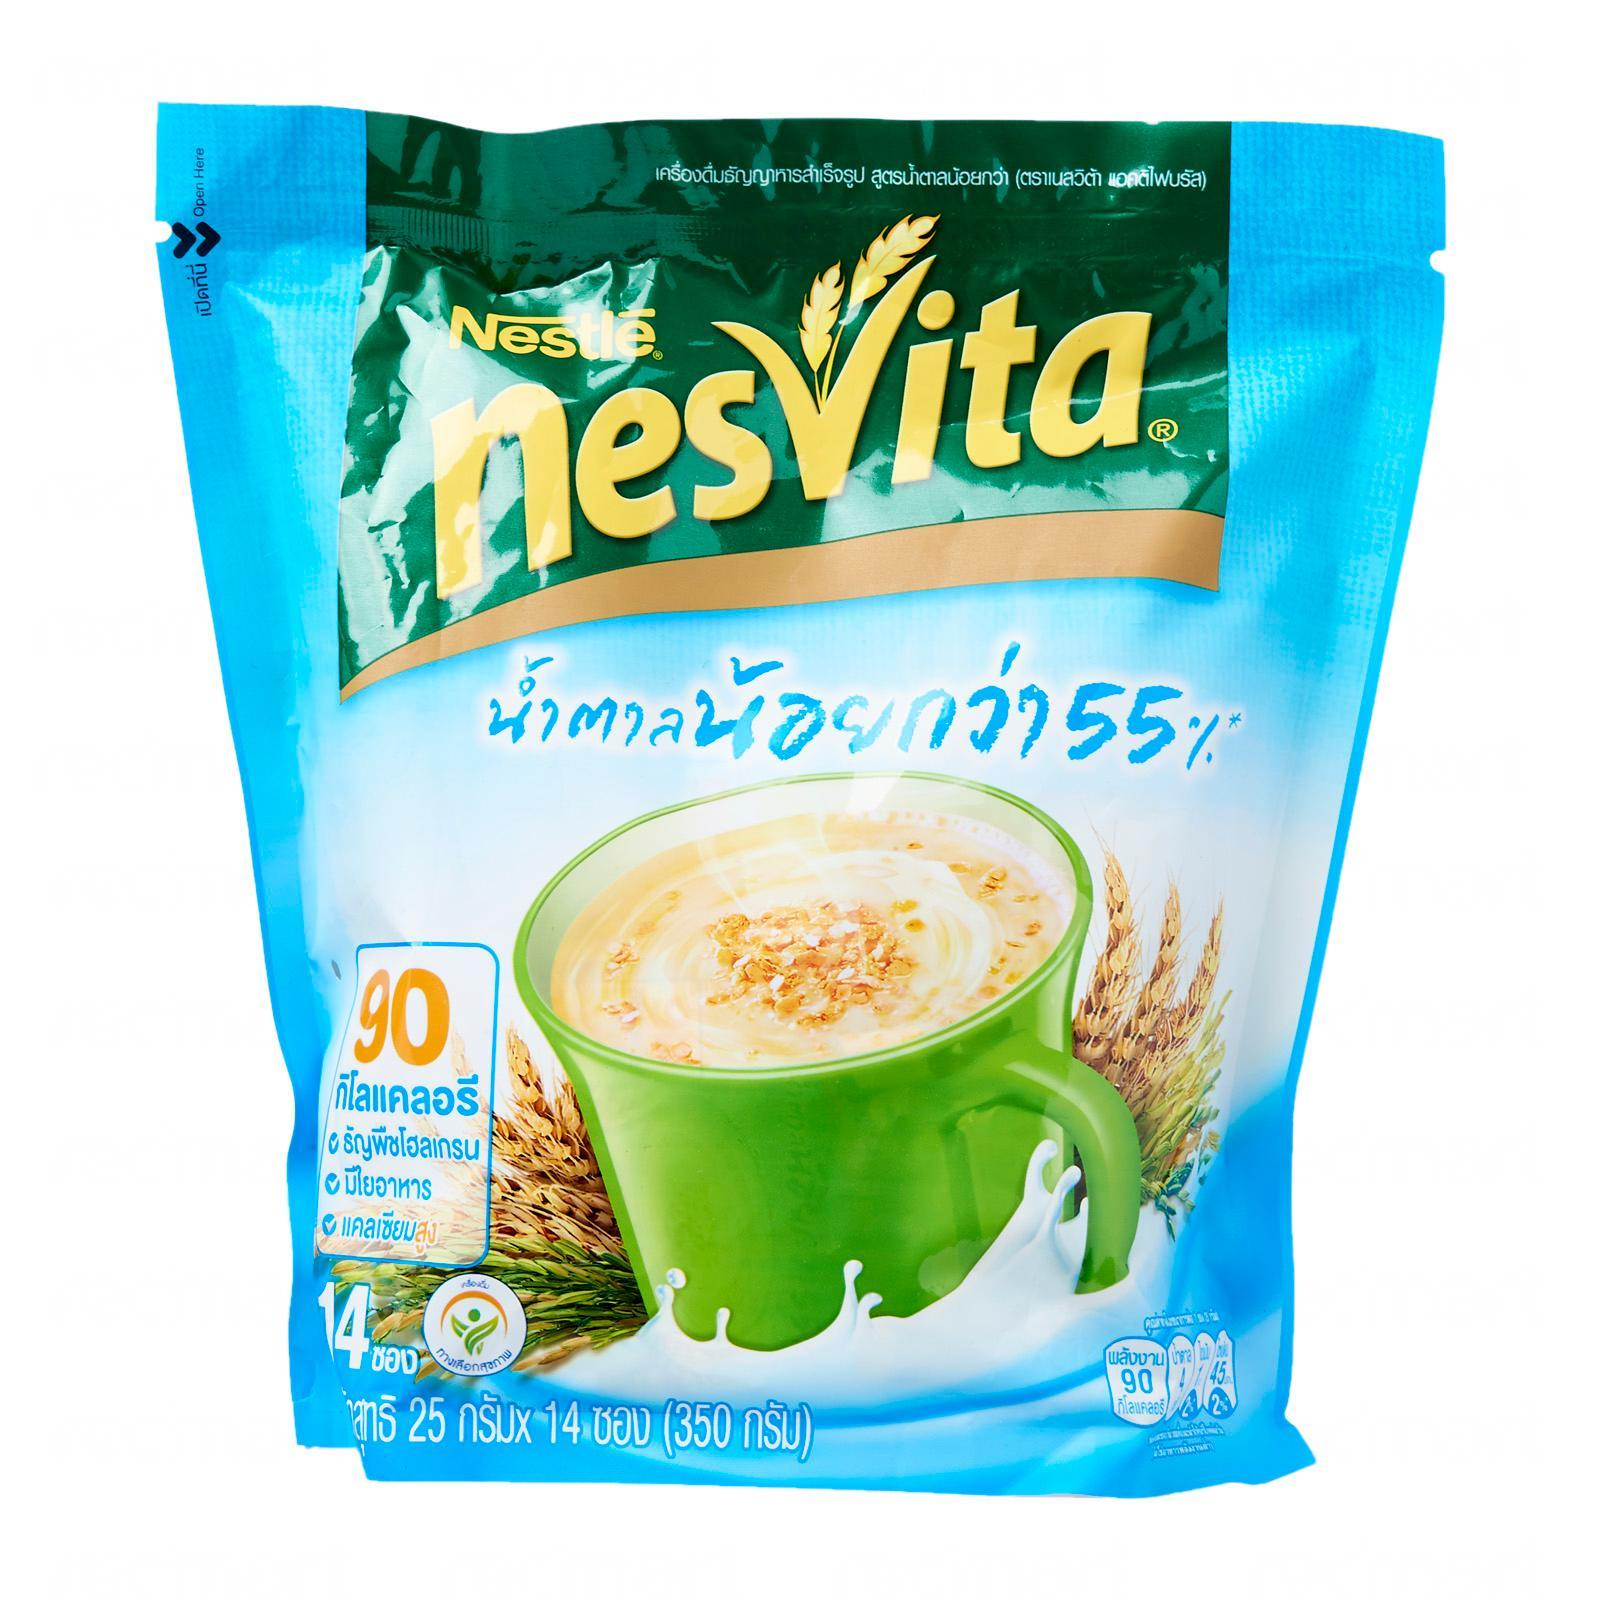 Nesvita Instant Cereal Drink Whole-Grain Low Sugar Size By Redmart.